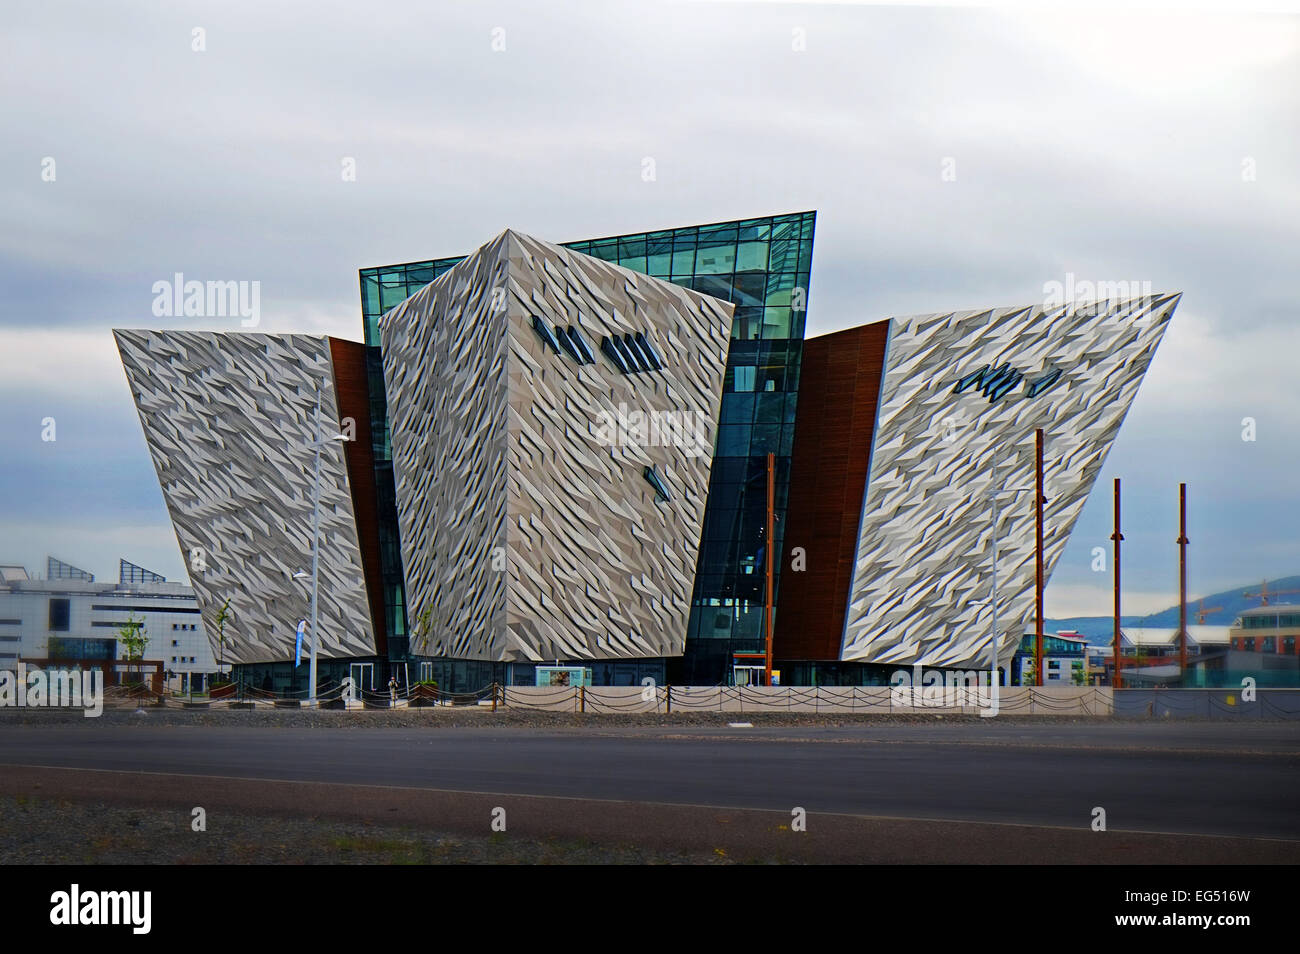 The futuristic Titanic museum building on the banks of the Lagan river in Belfast Northern Ireland. - Stock Image